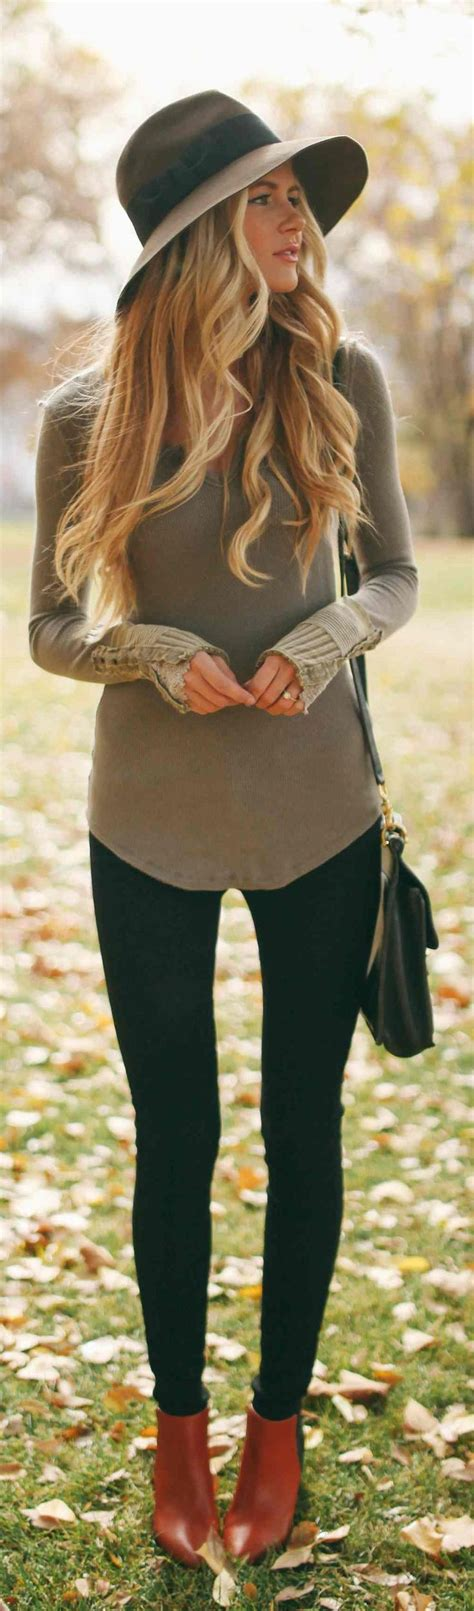 modern country style modern country style fashion for modern country style modern country style fashion for